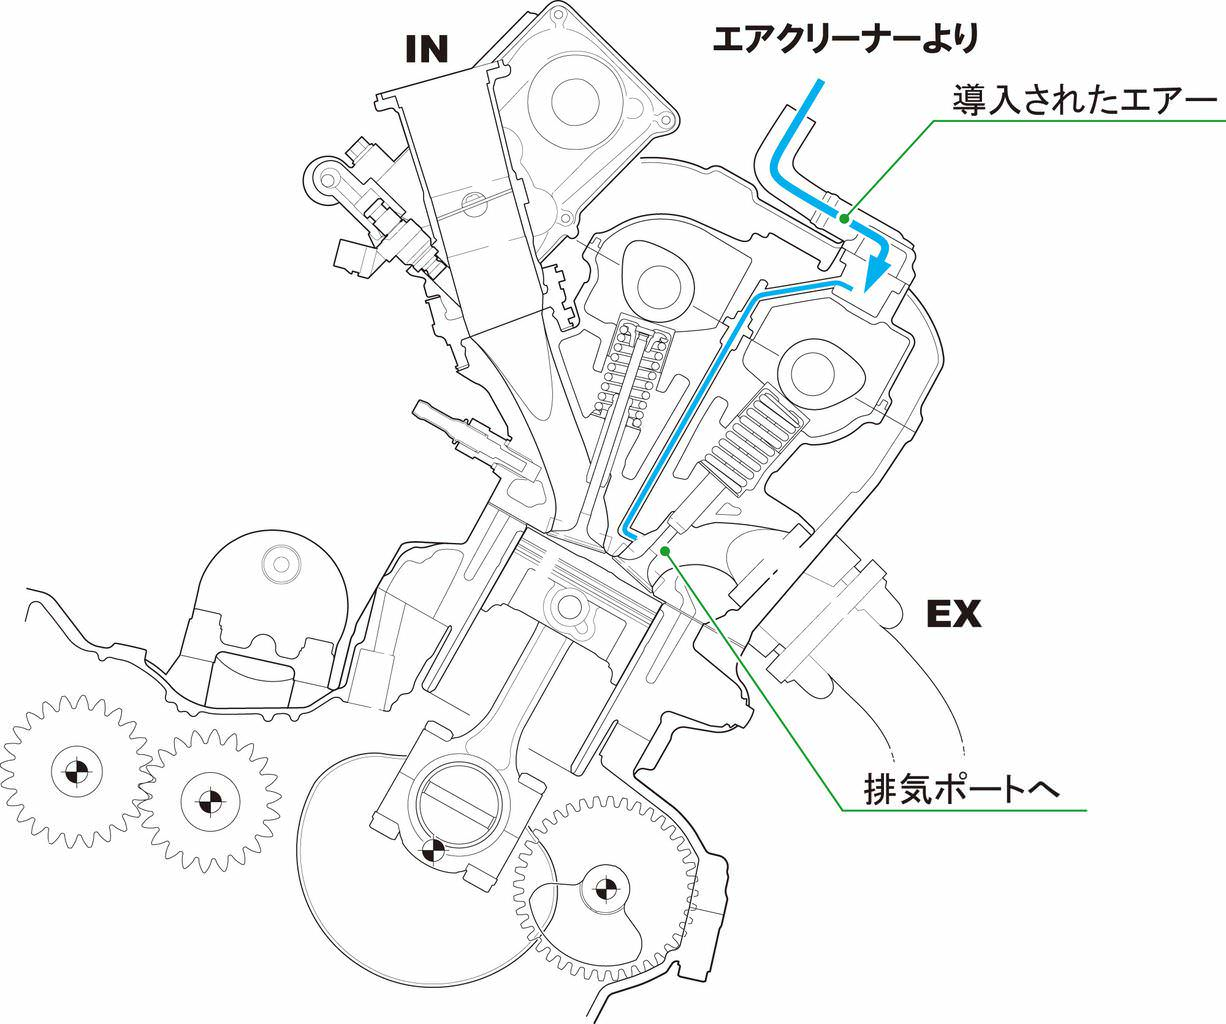 To make the engine very pact many technologies were applied such as laid primary driver gears for the cam chain oil pump on the right side that is